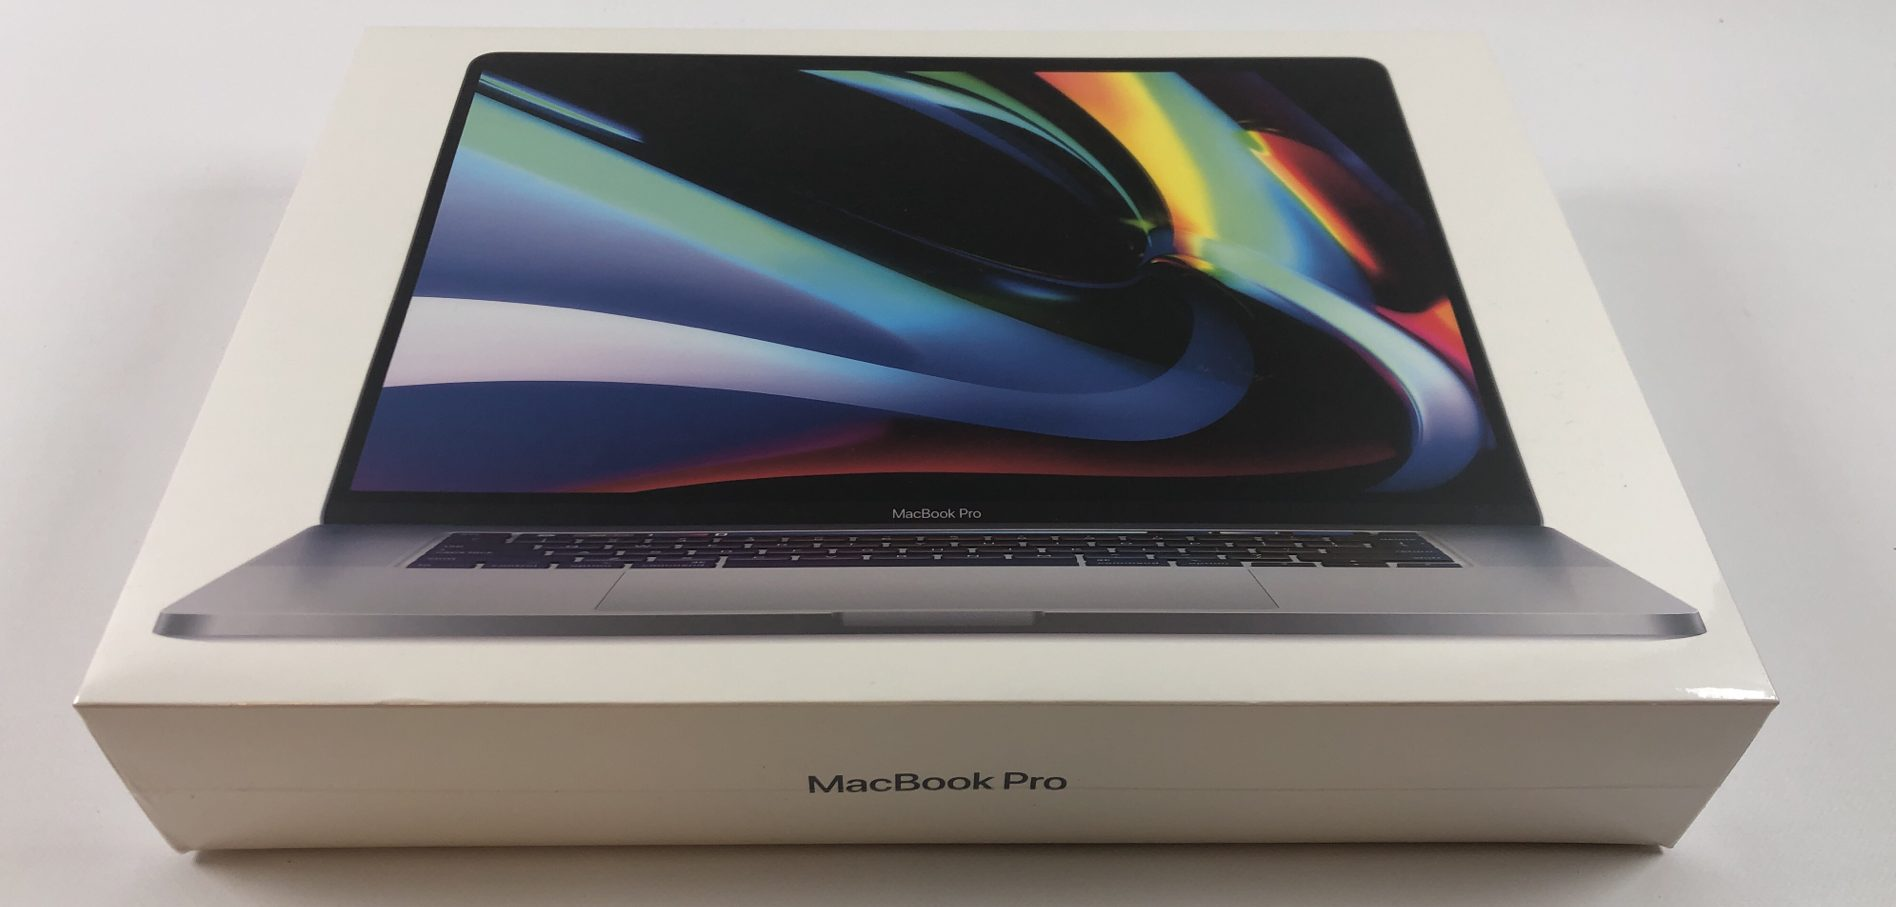 "MacBook Pro 16"" Touch Bar Late 2019 (Intel 6-Core i7 2.6 GHz 16 GB RAM 512 GB SSD), Space Gray, Intel 6-Core i7 2.6 GHz, 16 GB RAM, 512 GB SSD, image 1"